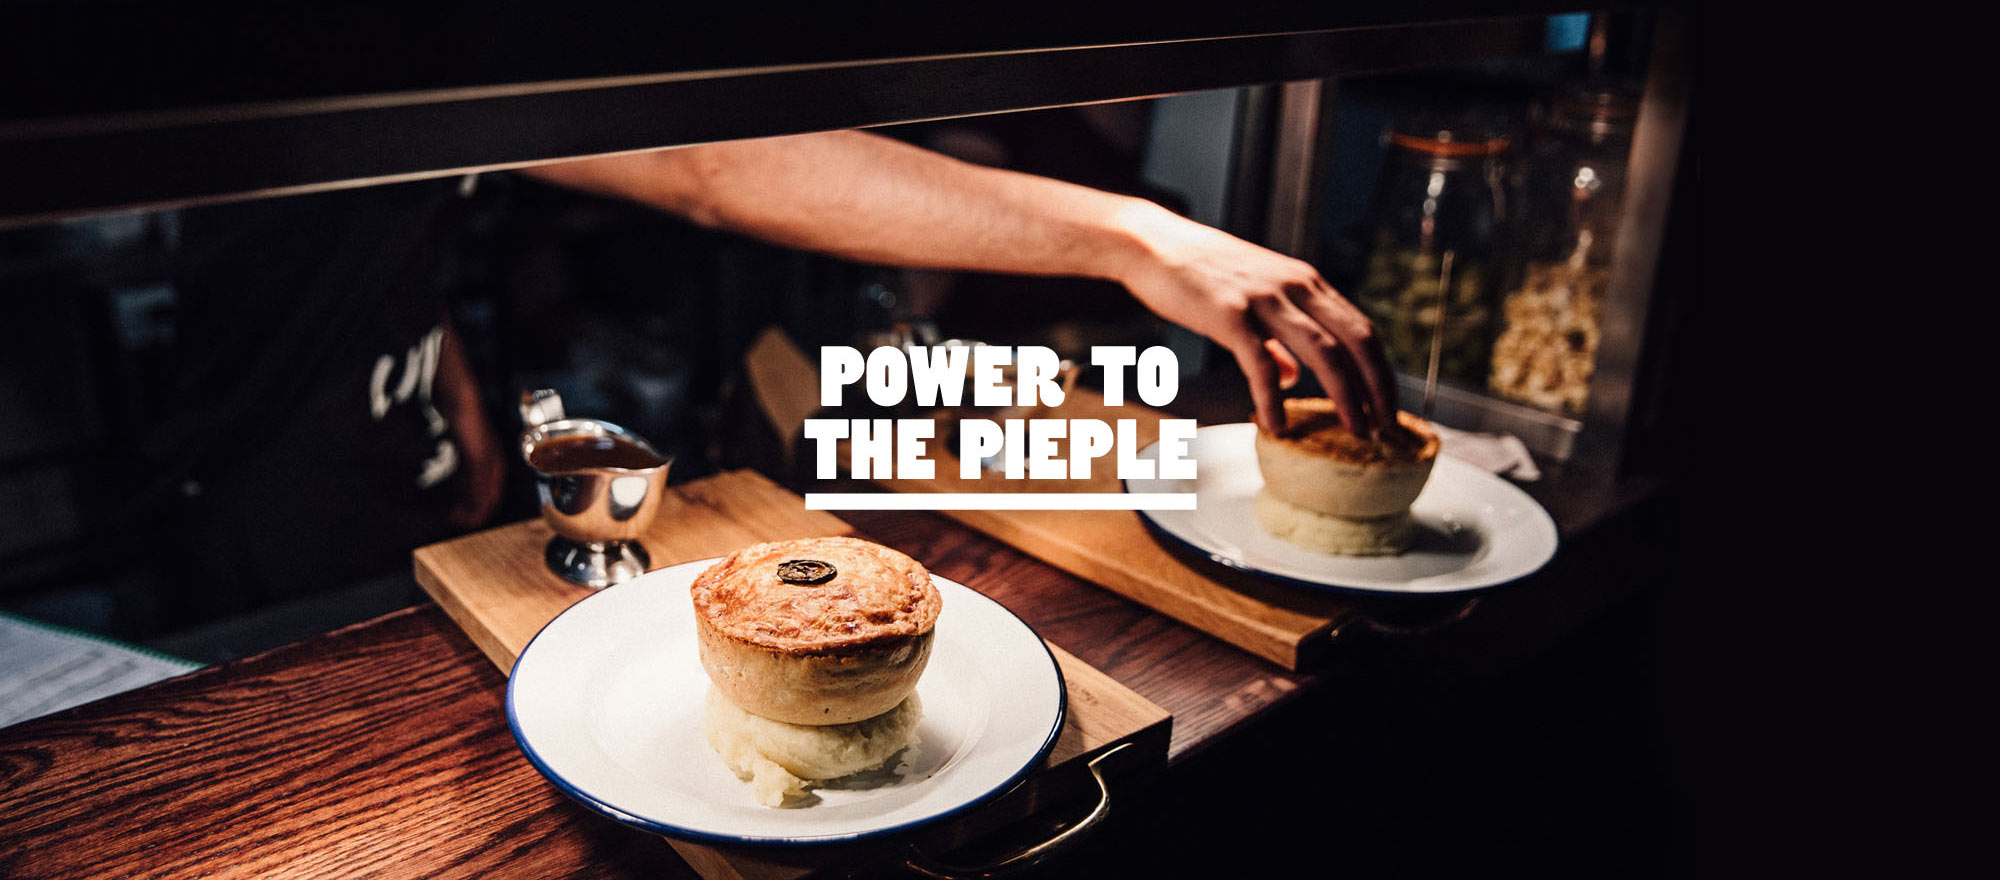 Power to the Pieple